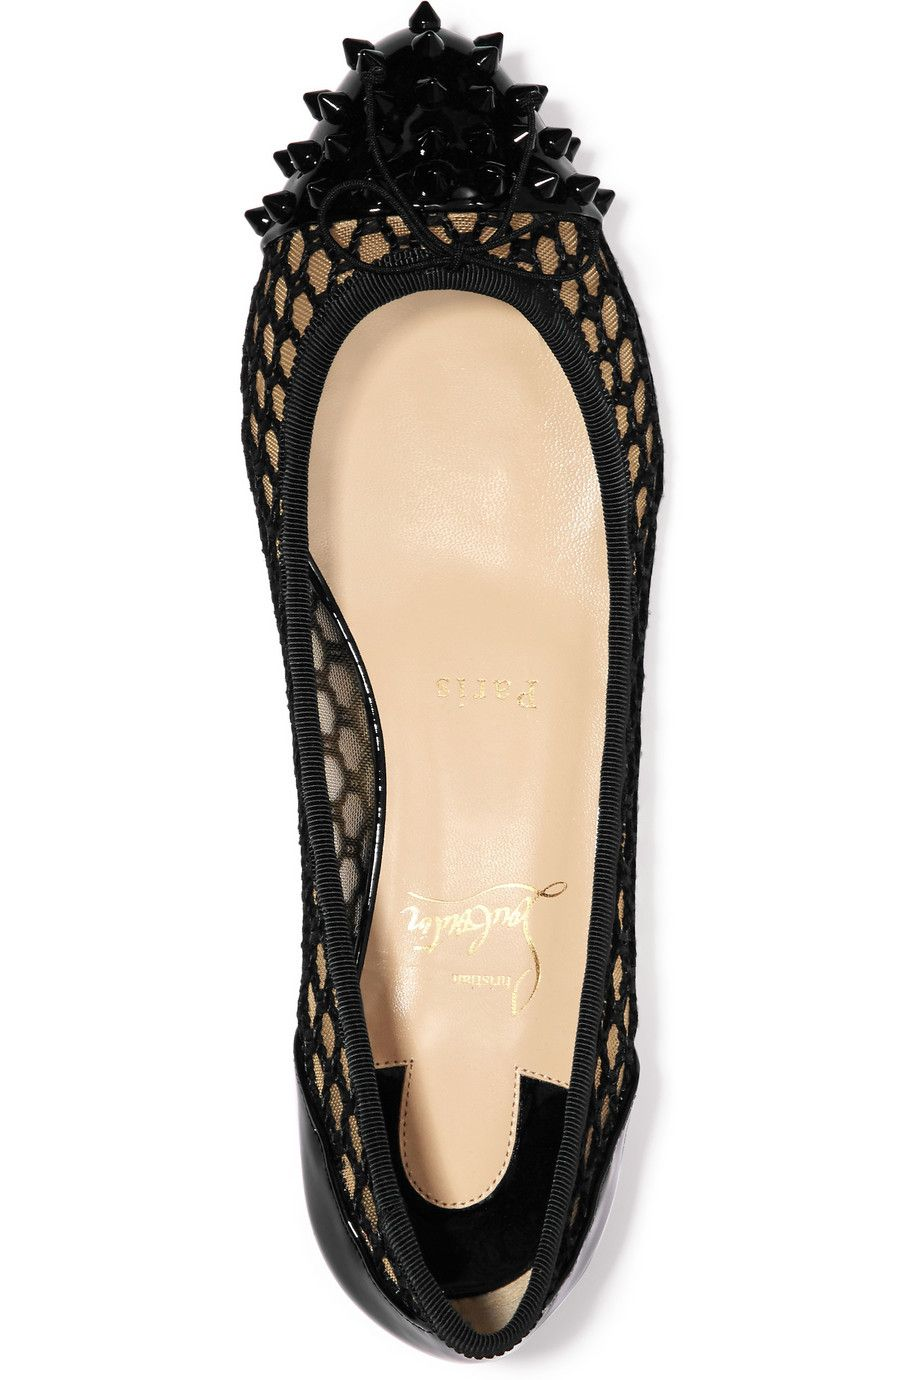 cf5708d876 Christian Louboutin | Mix spiked patent-leather and embroidered mesh  point-toe flats | NET-A-PORTER.COM